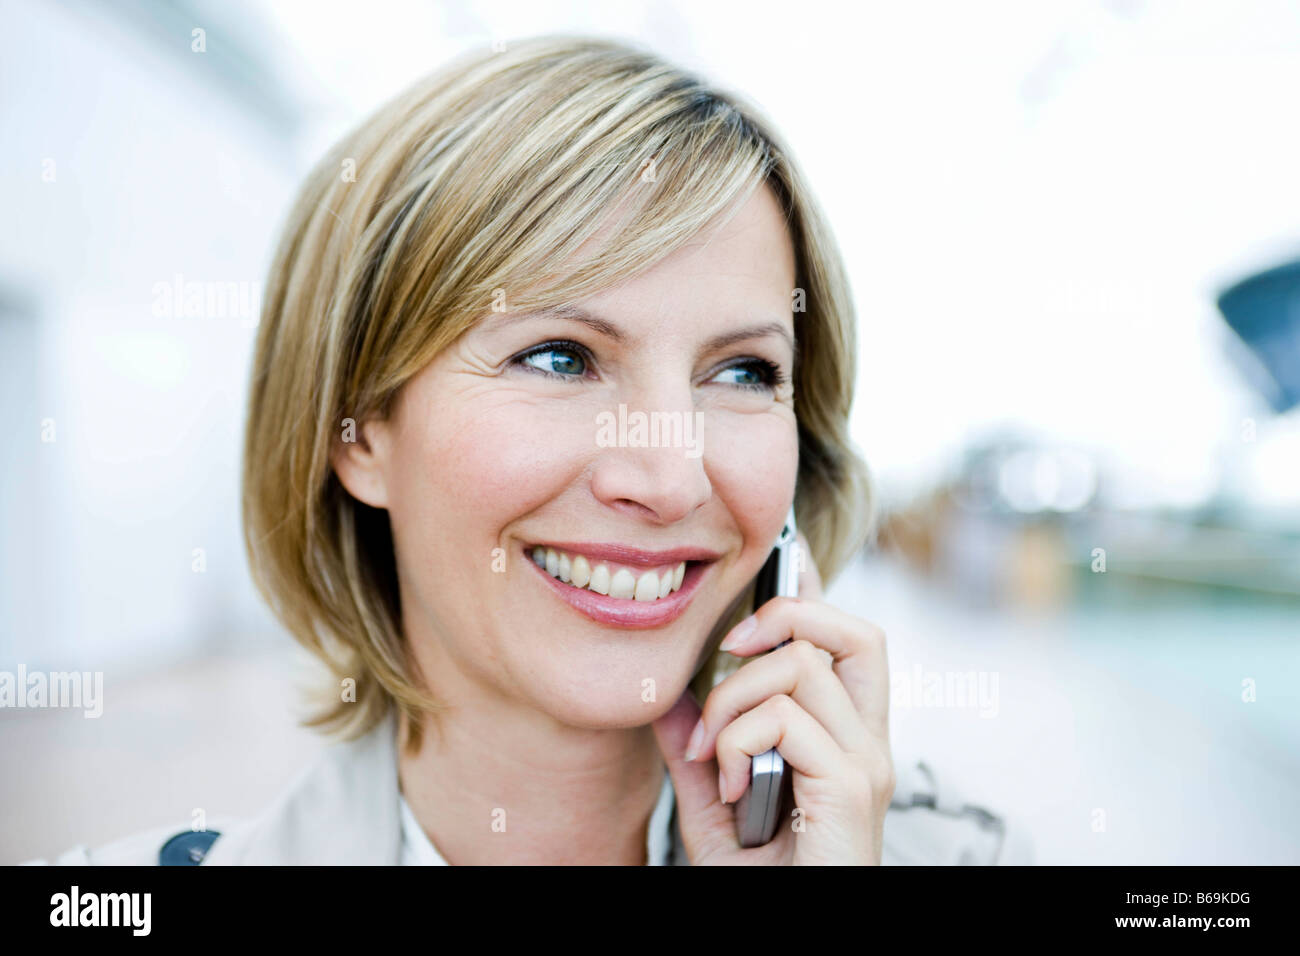 Woman smiling talking on cell phone - Stock Image